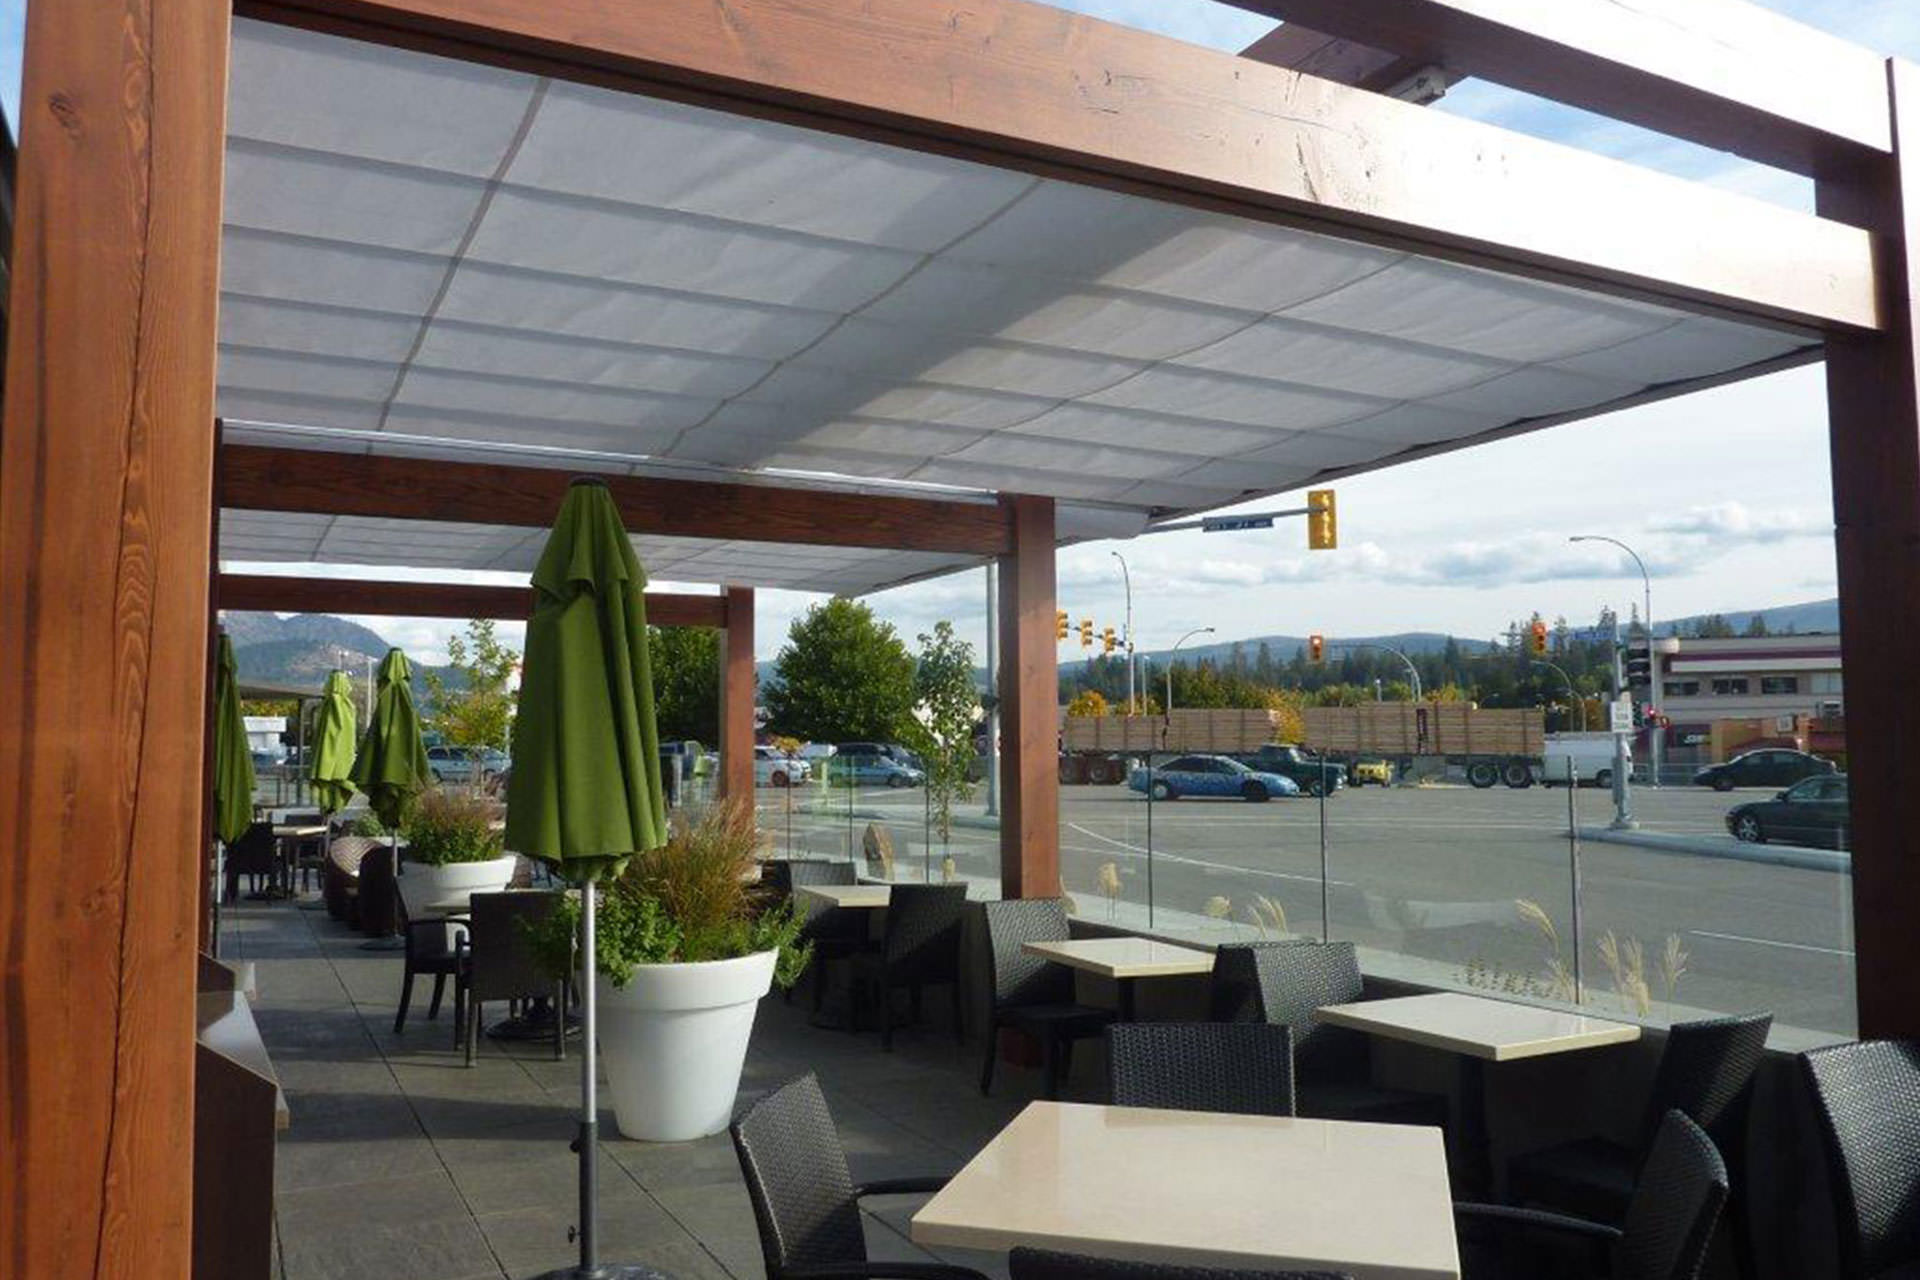 Cantilever Retractable Canopies at Ora Restaurant in Kelowna